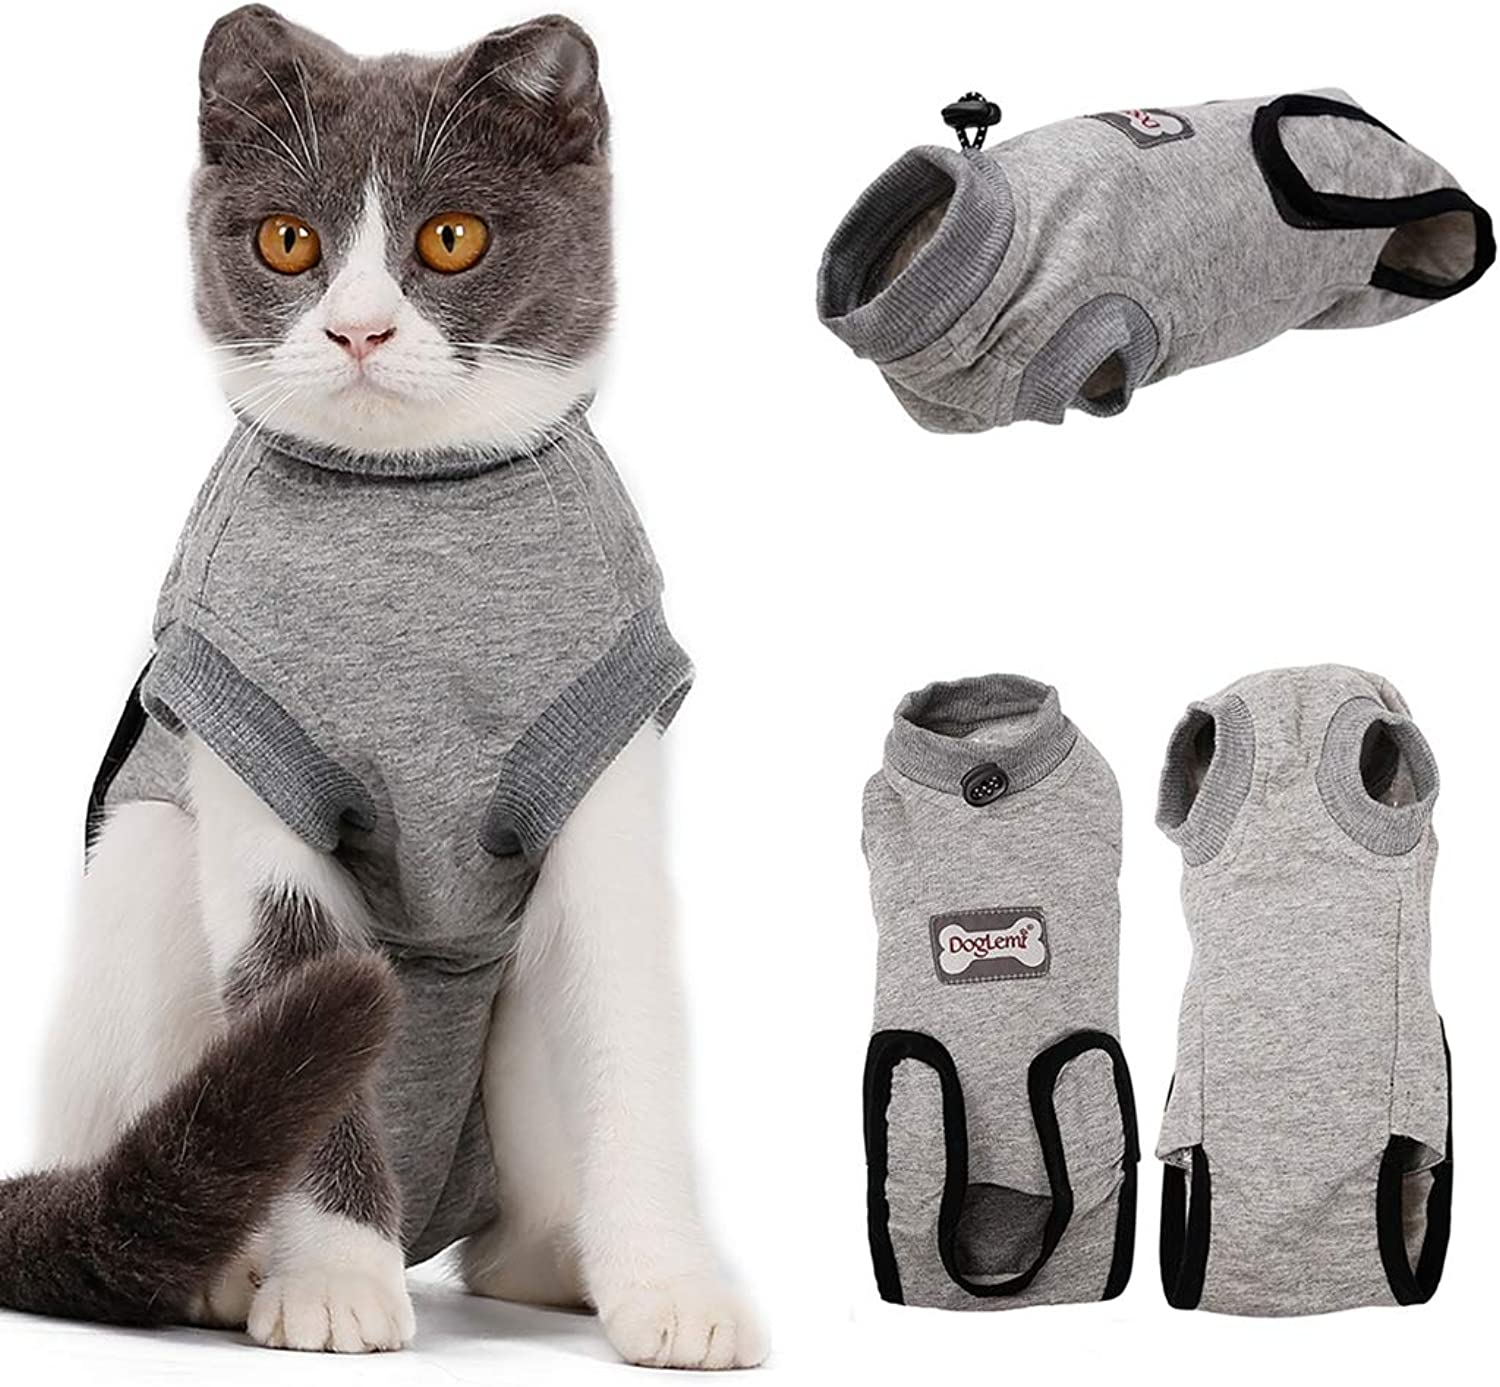 Cat Sterilization Clothes,rehabilitation Suit Pet,for The Treatment Of Weaning Abdominal Wound Skin Diseases,disinfecting A Female Or Male Cat,cotton Breathable Household Clothing Wiping Medicine Wear Weaning